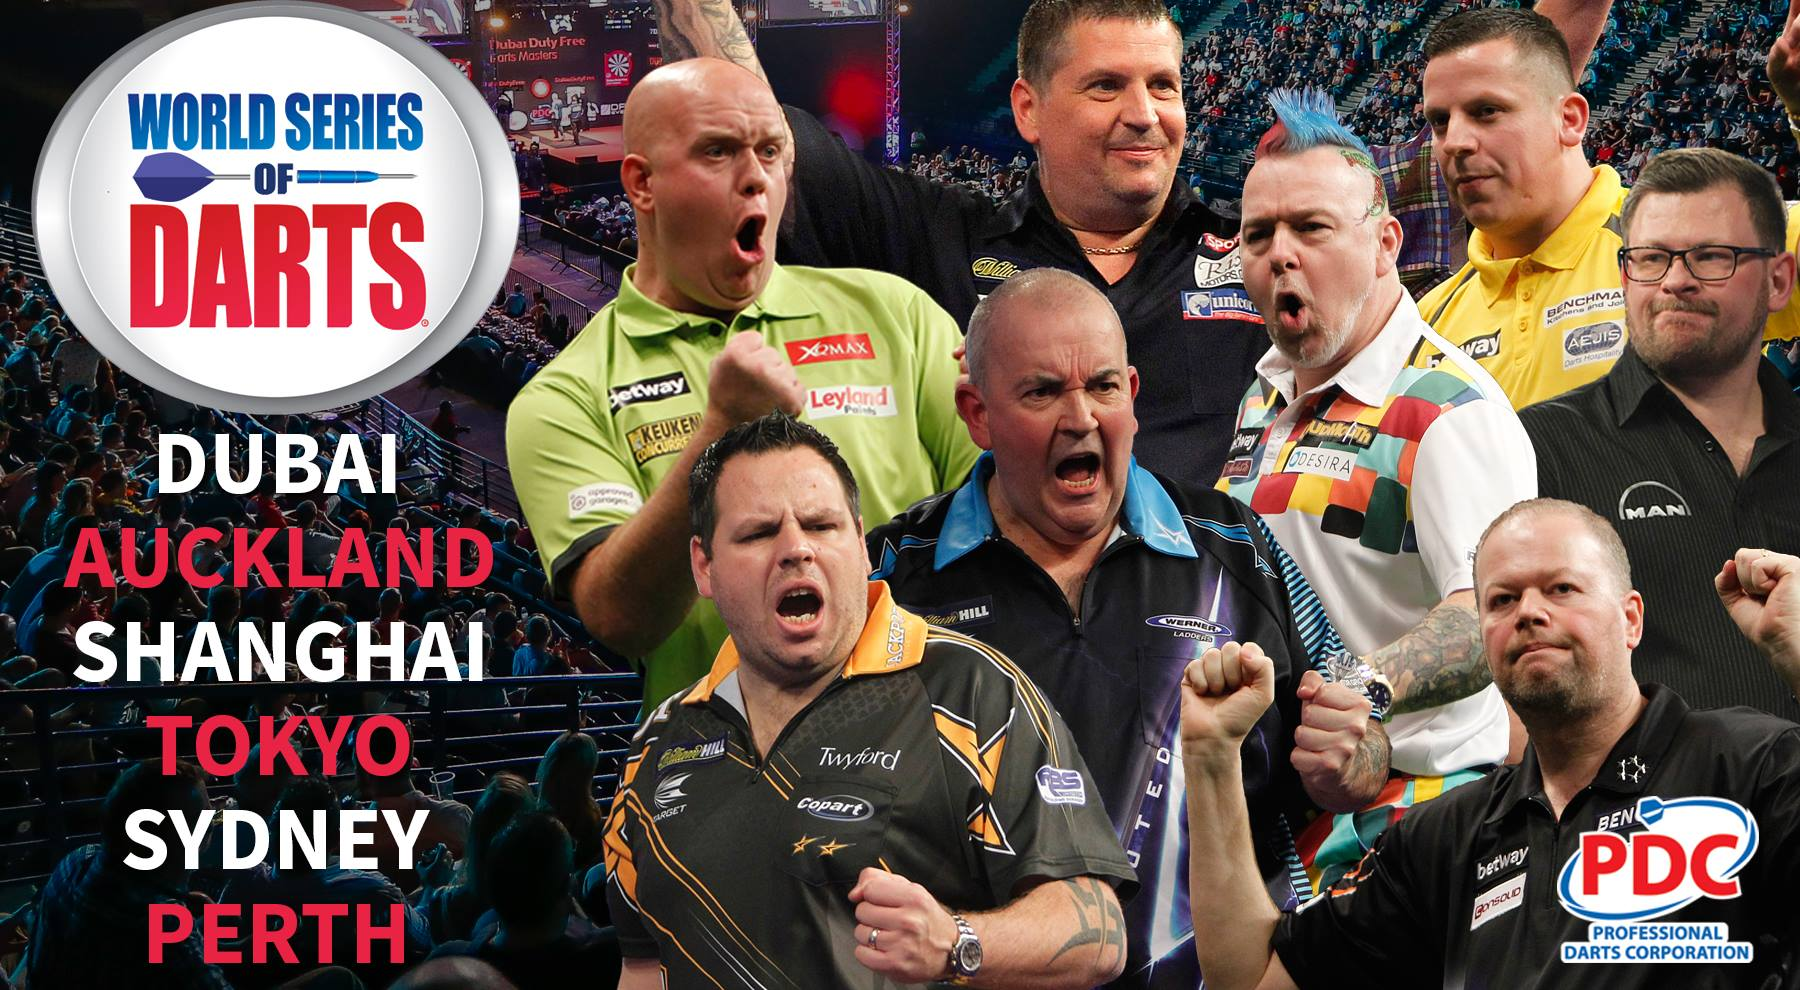 Darts World Series